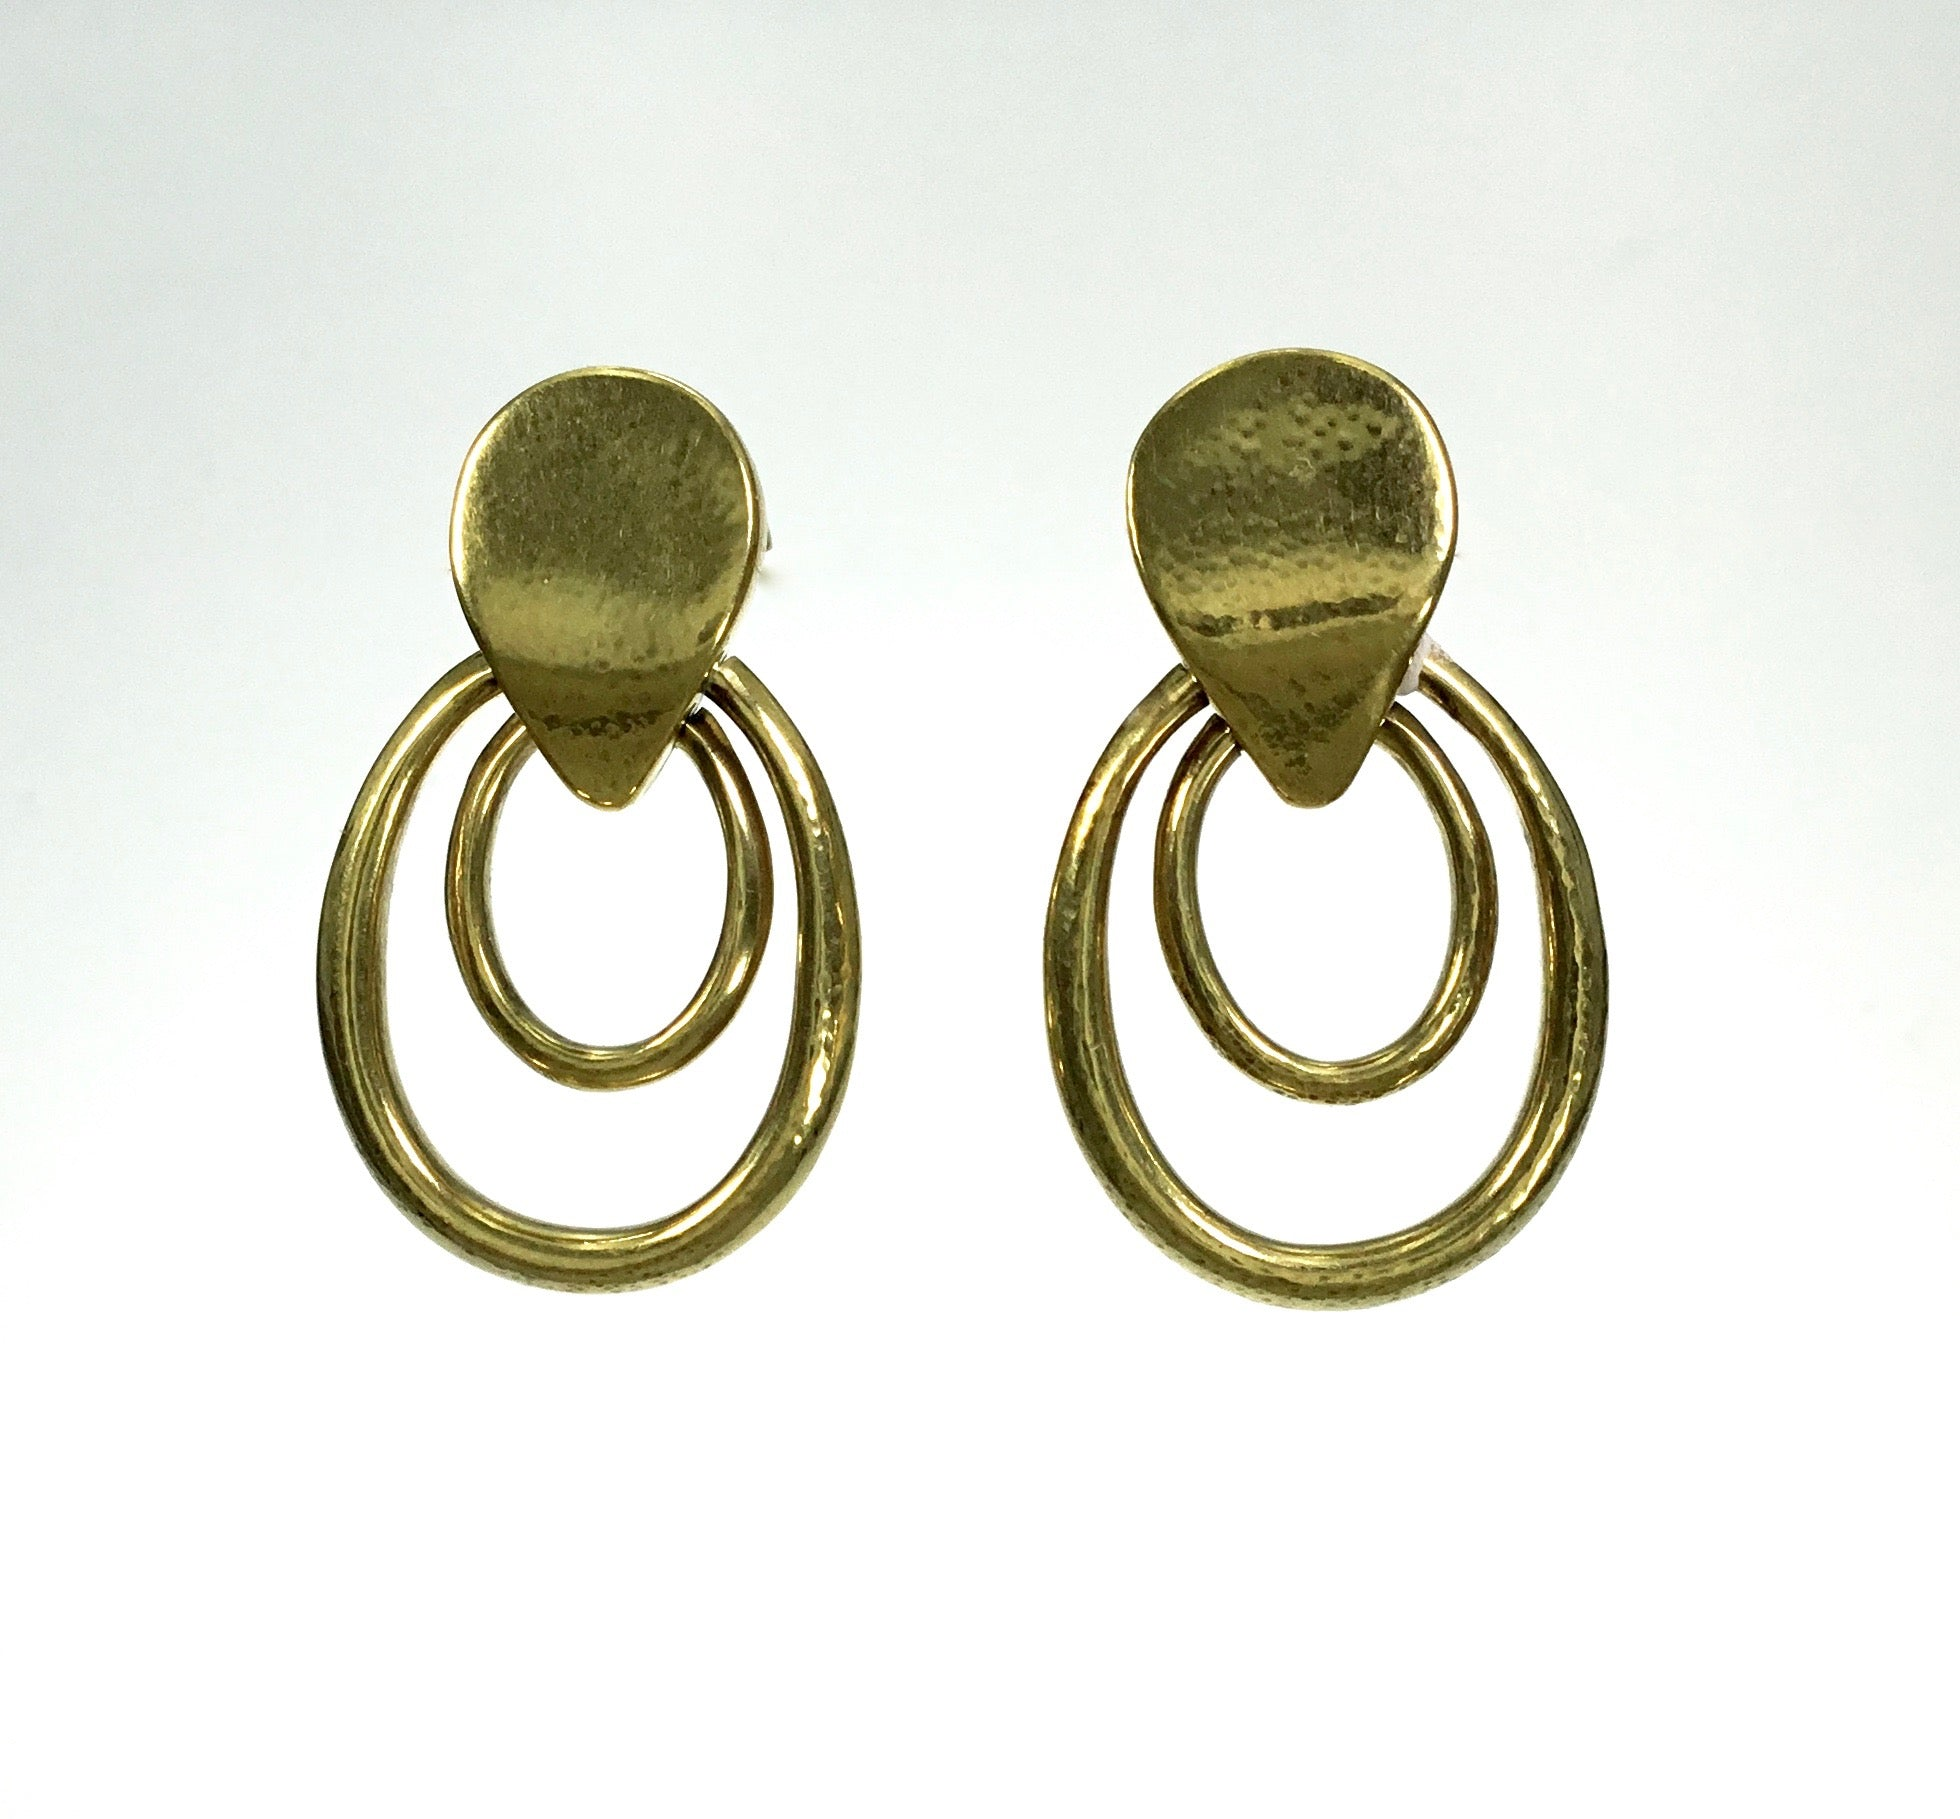 Vaubel Double Hoop Flat Top Earrings